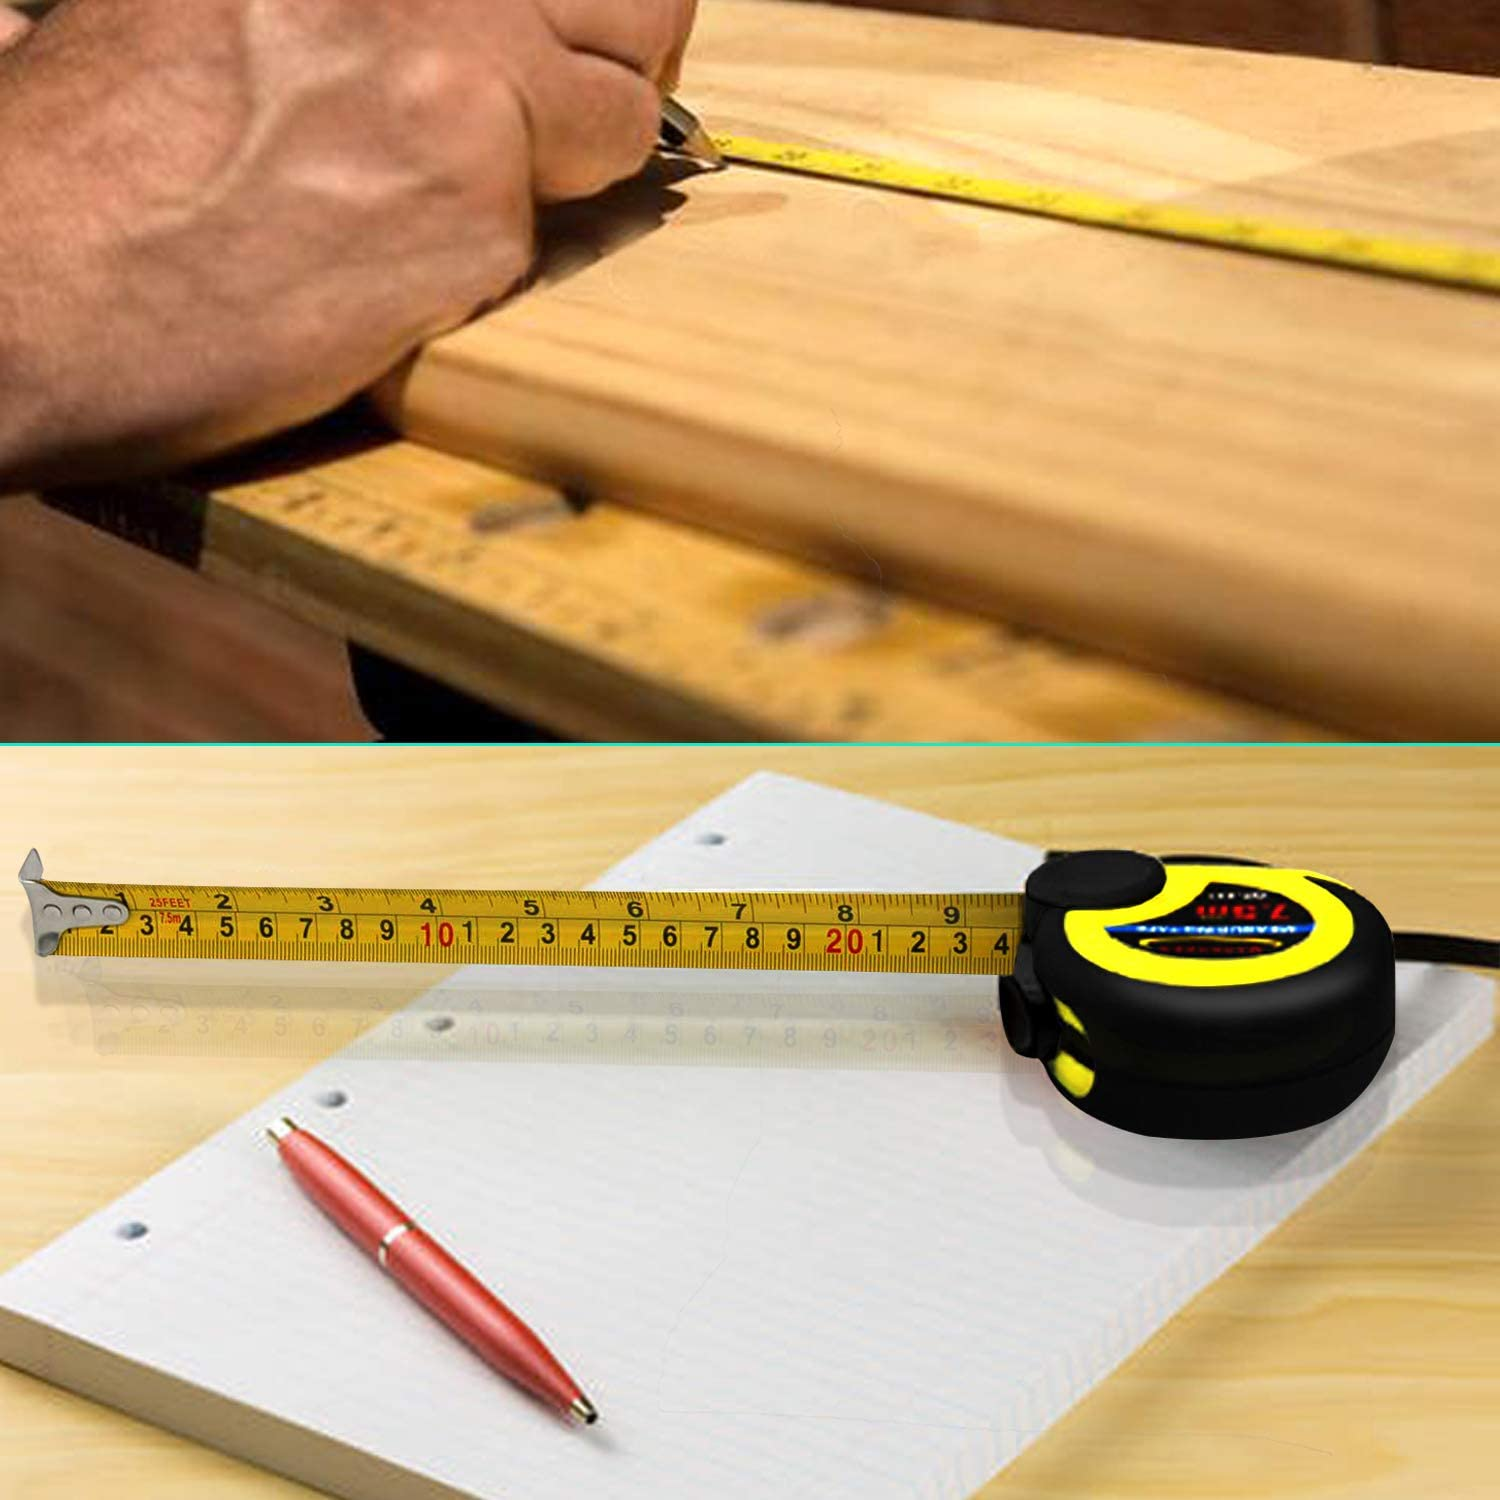 2 Pack Tape Measures for Body Sewing Tailor Cloth MARKKEER Tape Measure 25 Ft Thumb Lock Slider /& Retractable Sturdy Heavy Duty Measuring Tape 60